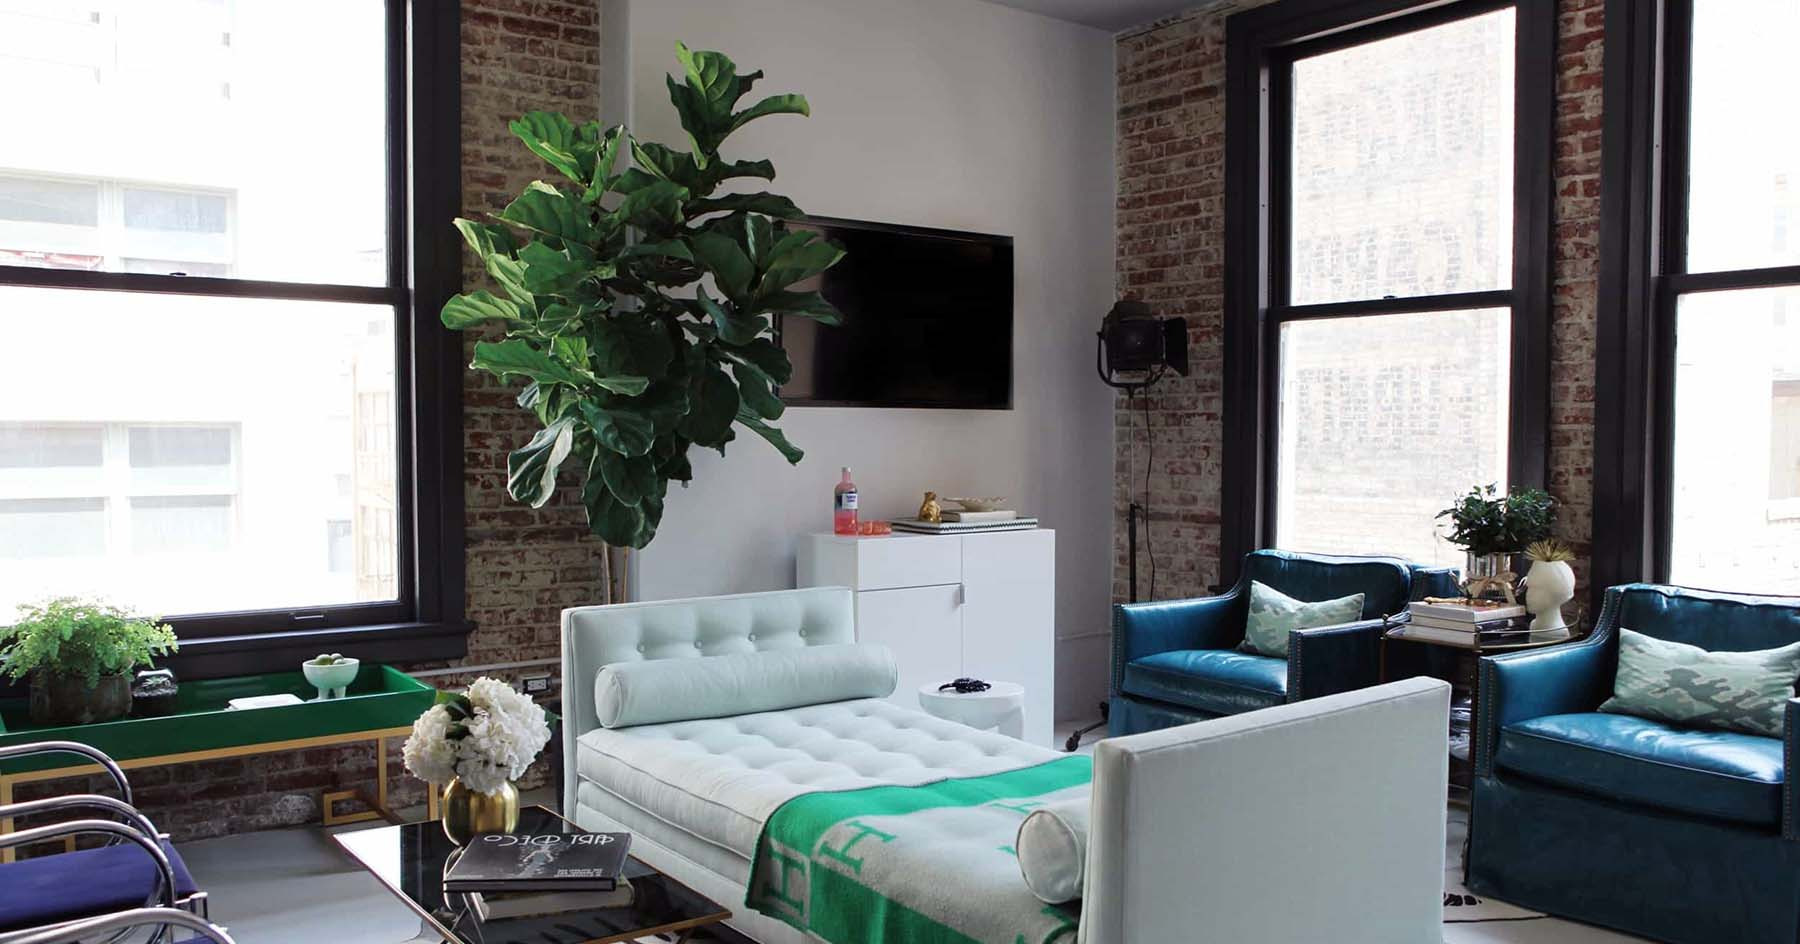 City apartment with red brick walls that are slightly white washed. Black frame windows with drywall and concrete floors give the room a modern feel.